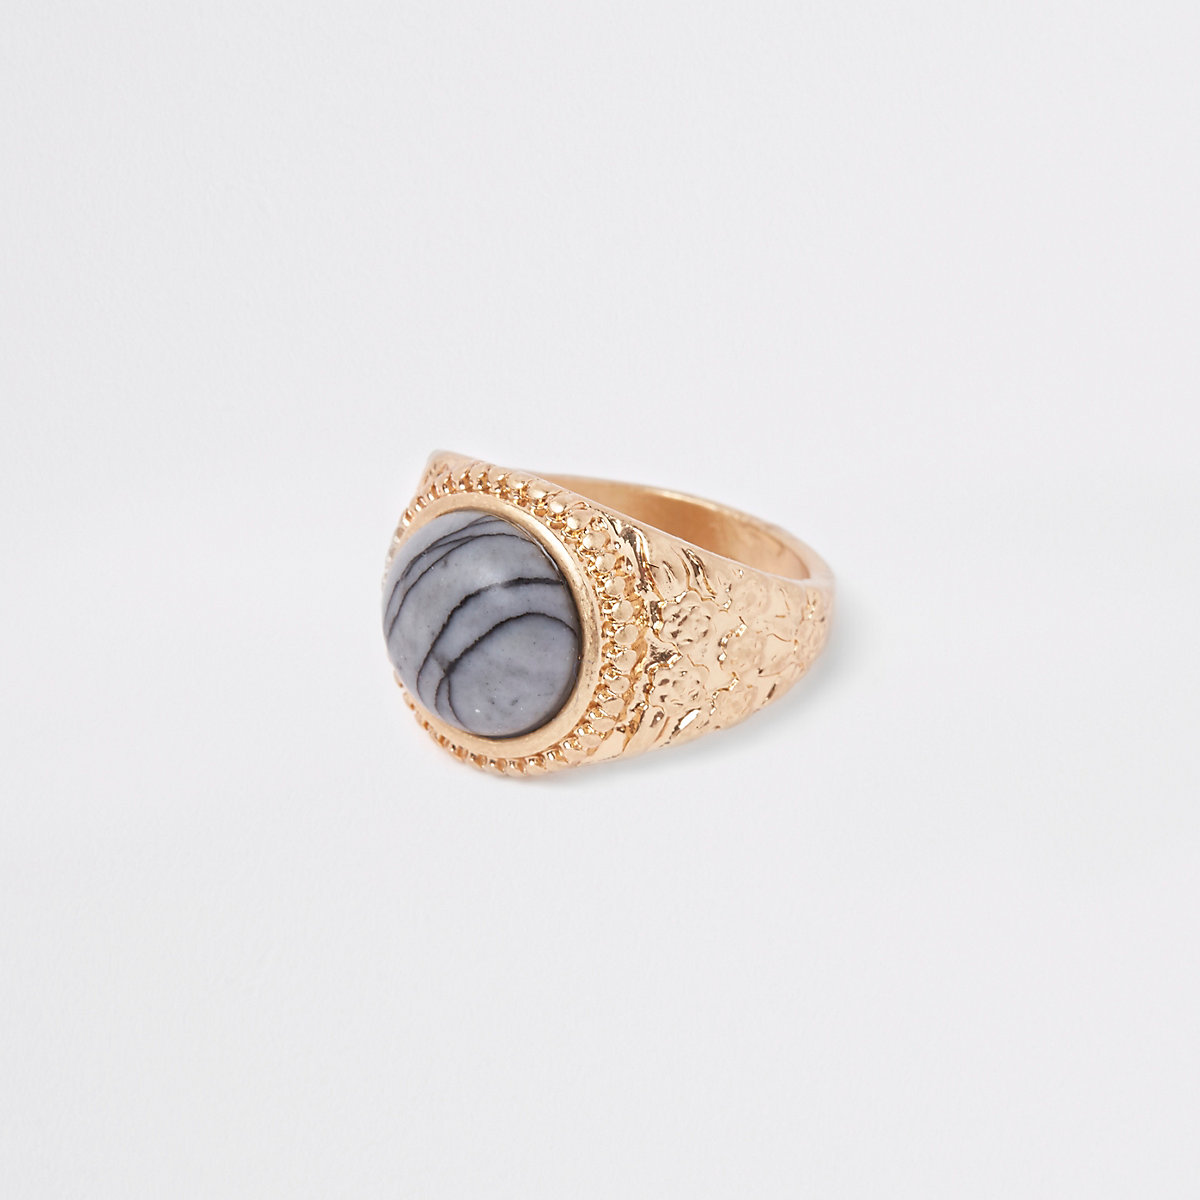 Gold tone marble stone ring